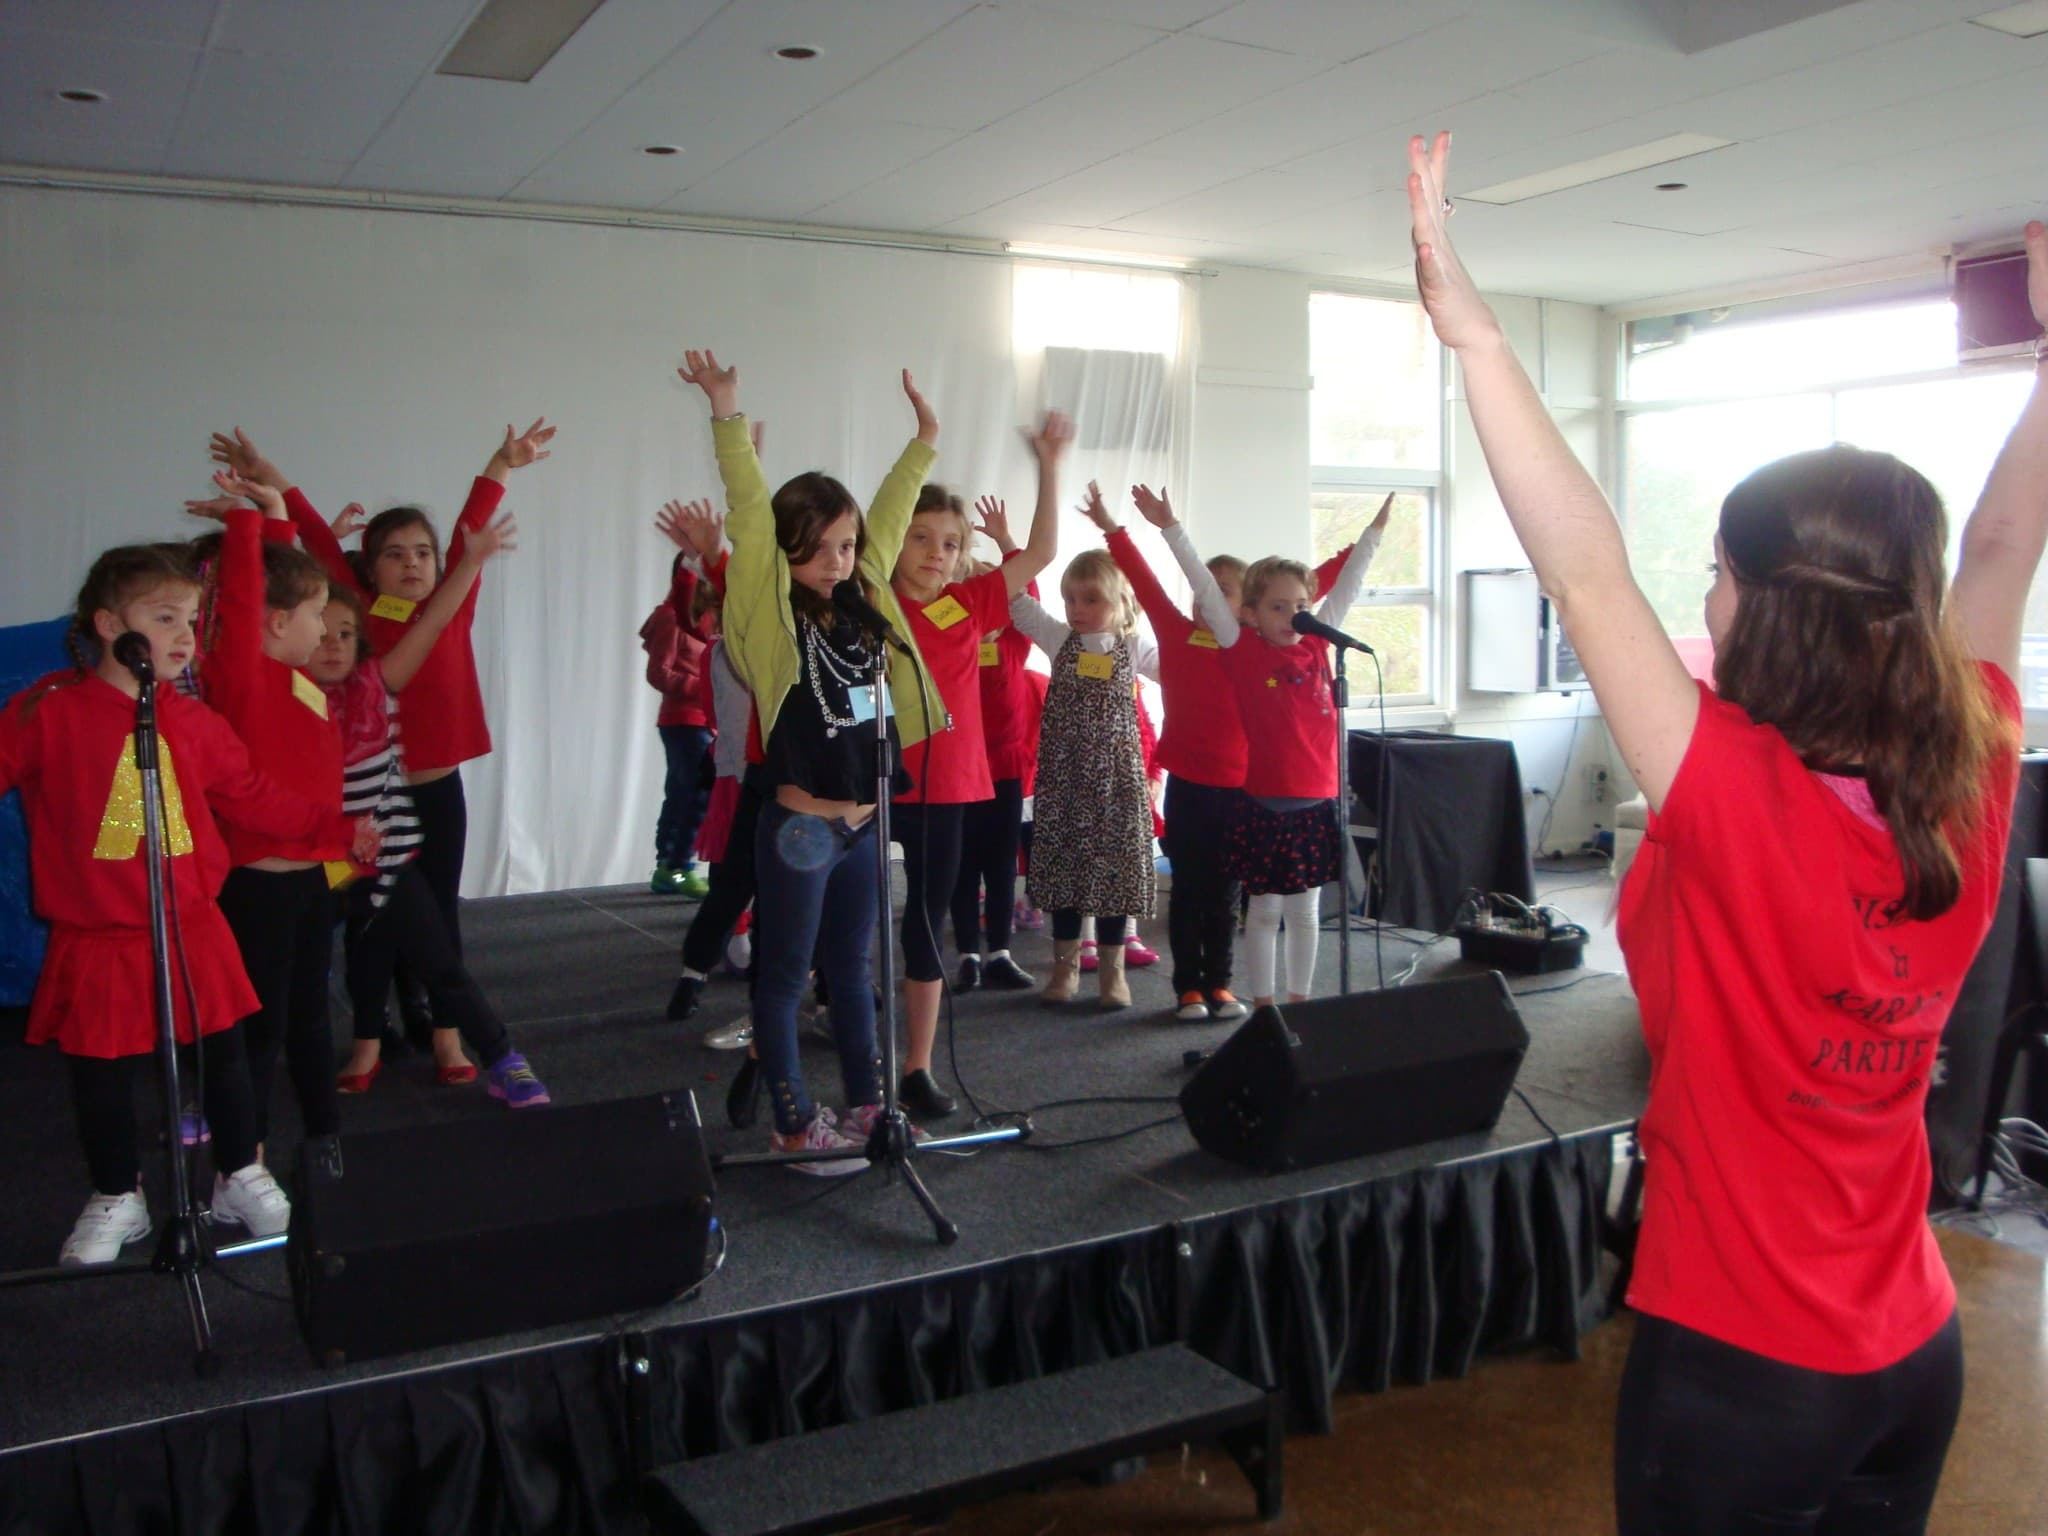 School Holidays In Perth School Holiday Programs In Perth Bop Till You Drop